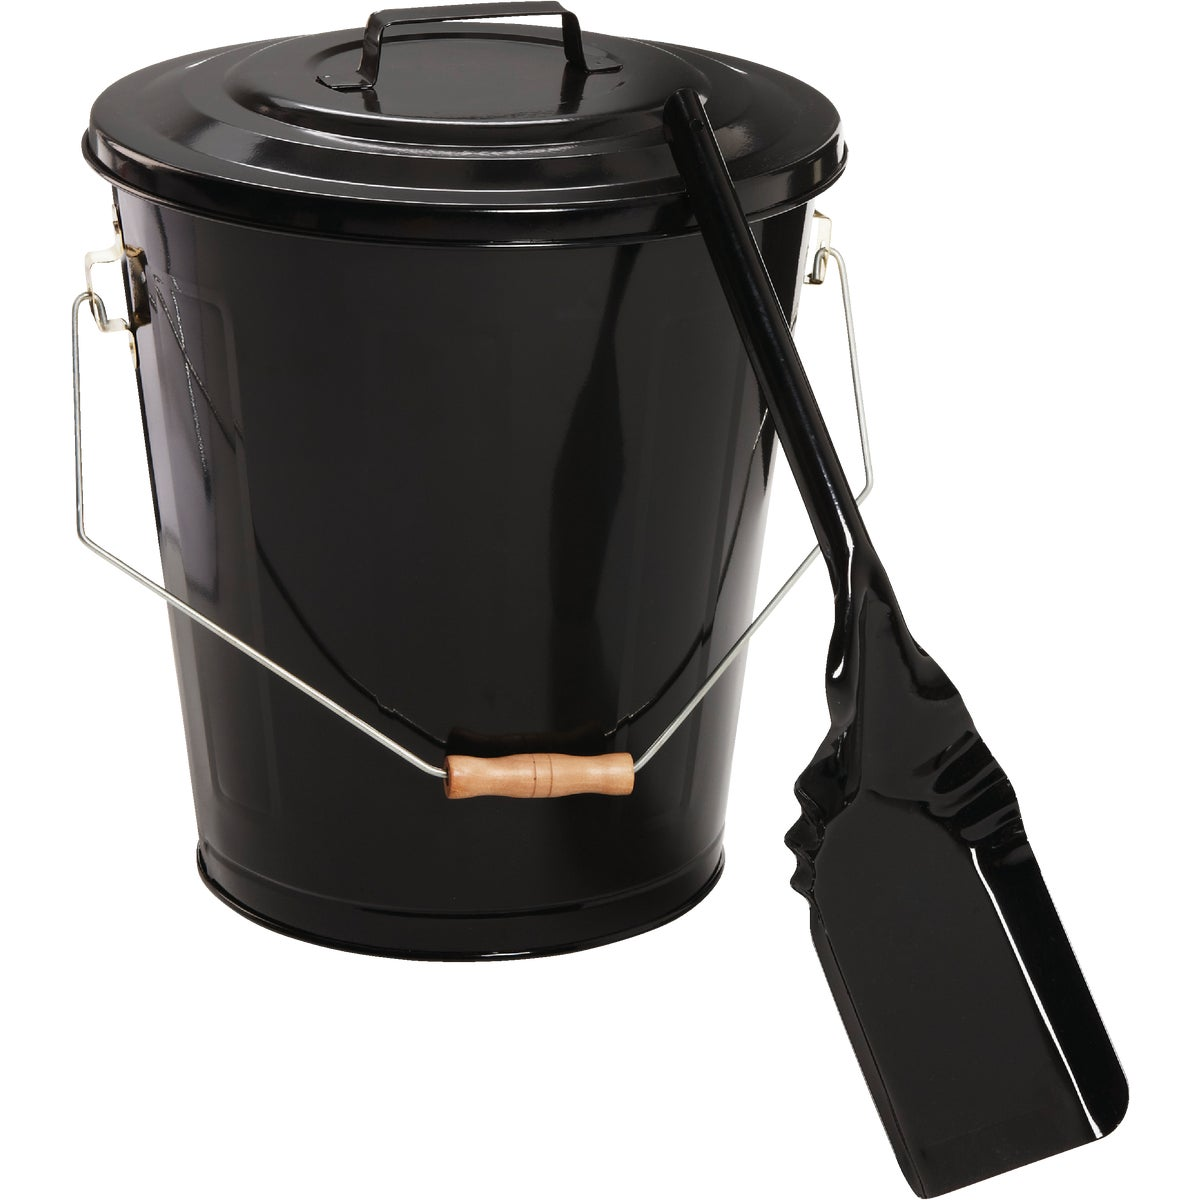 ASH CONTAINER & SHOVEL - LT0160 by Imperial Mfg Group